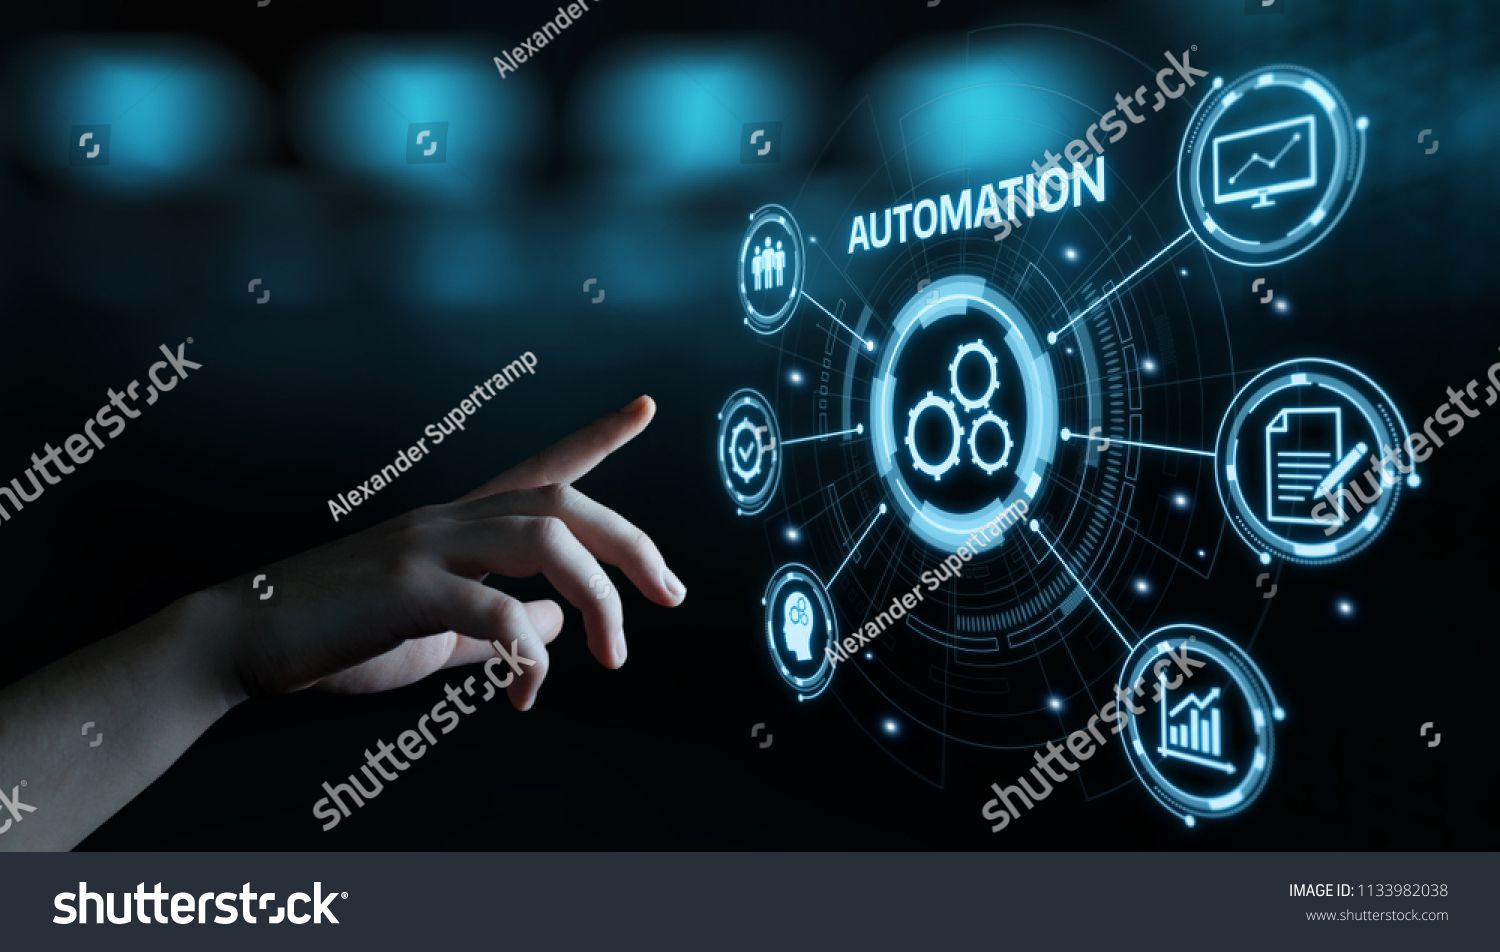 Automation Software Technology Process System Business Concept Sponsored Ad Technol Agile Software Development Internet Technology Business Stock Images